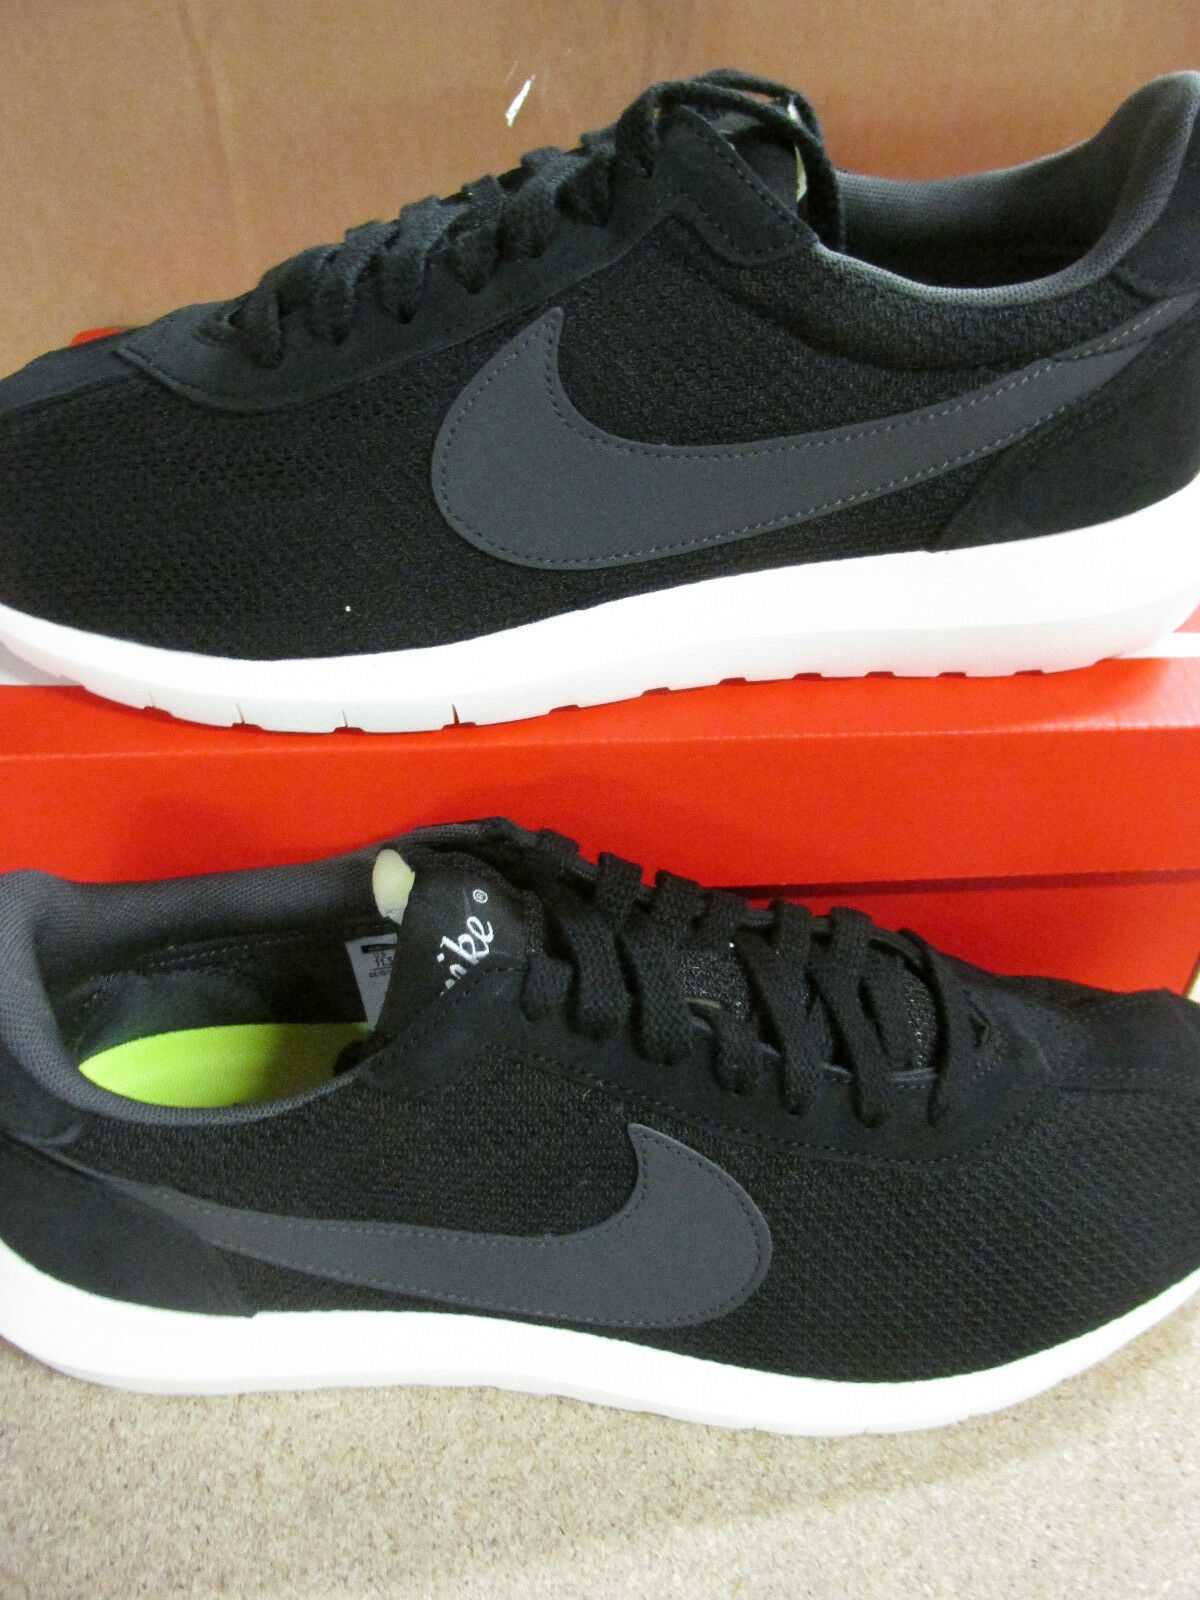 nike roshe LD-1000 QS Baskets homme trainers 802022 010 Baskets QS chaussures 5ccc28